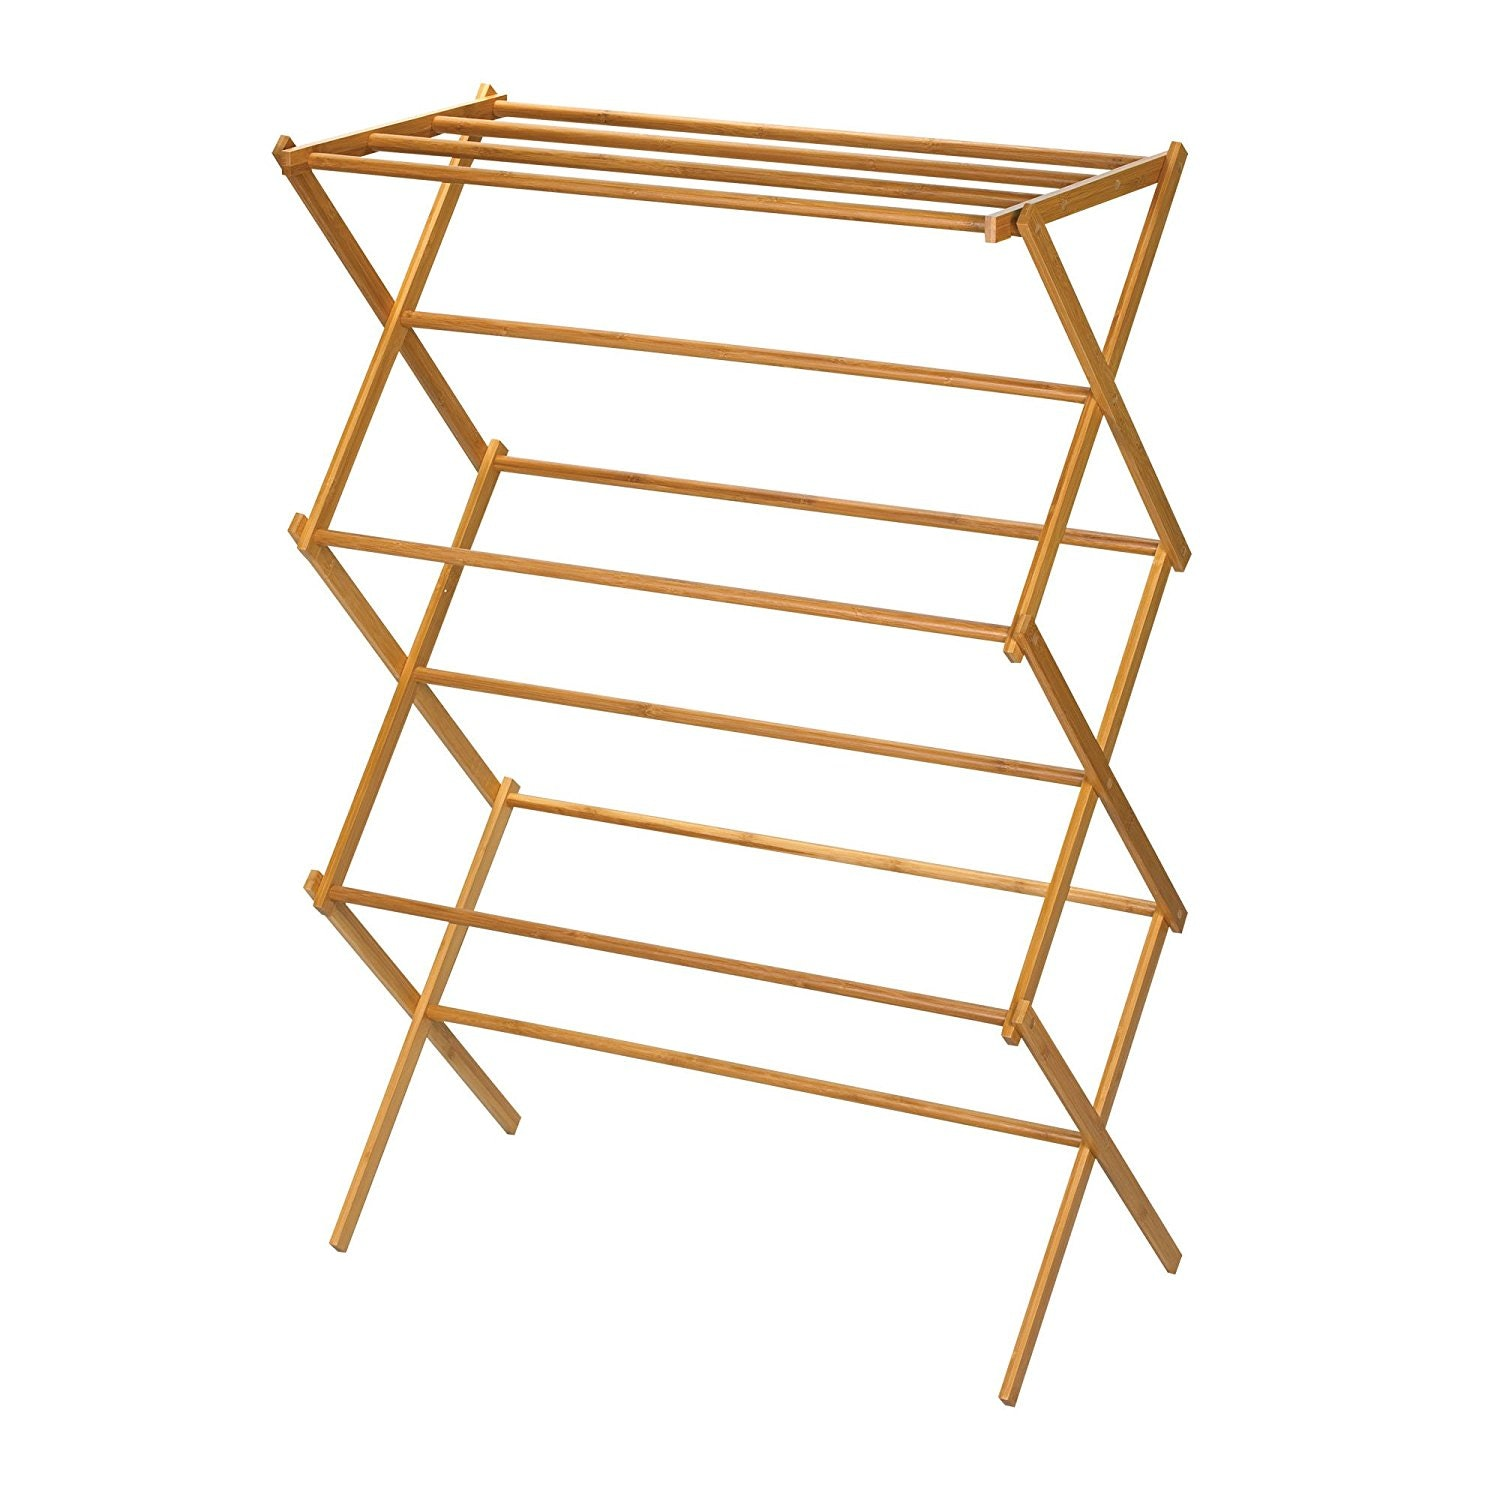 Wooden Clothes Drying Rack Australia   Wooden Ideas